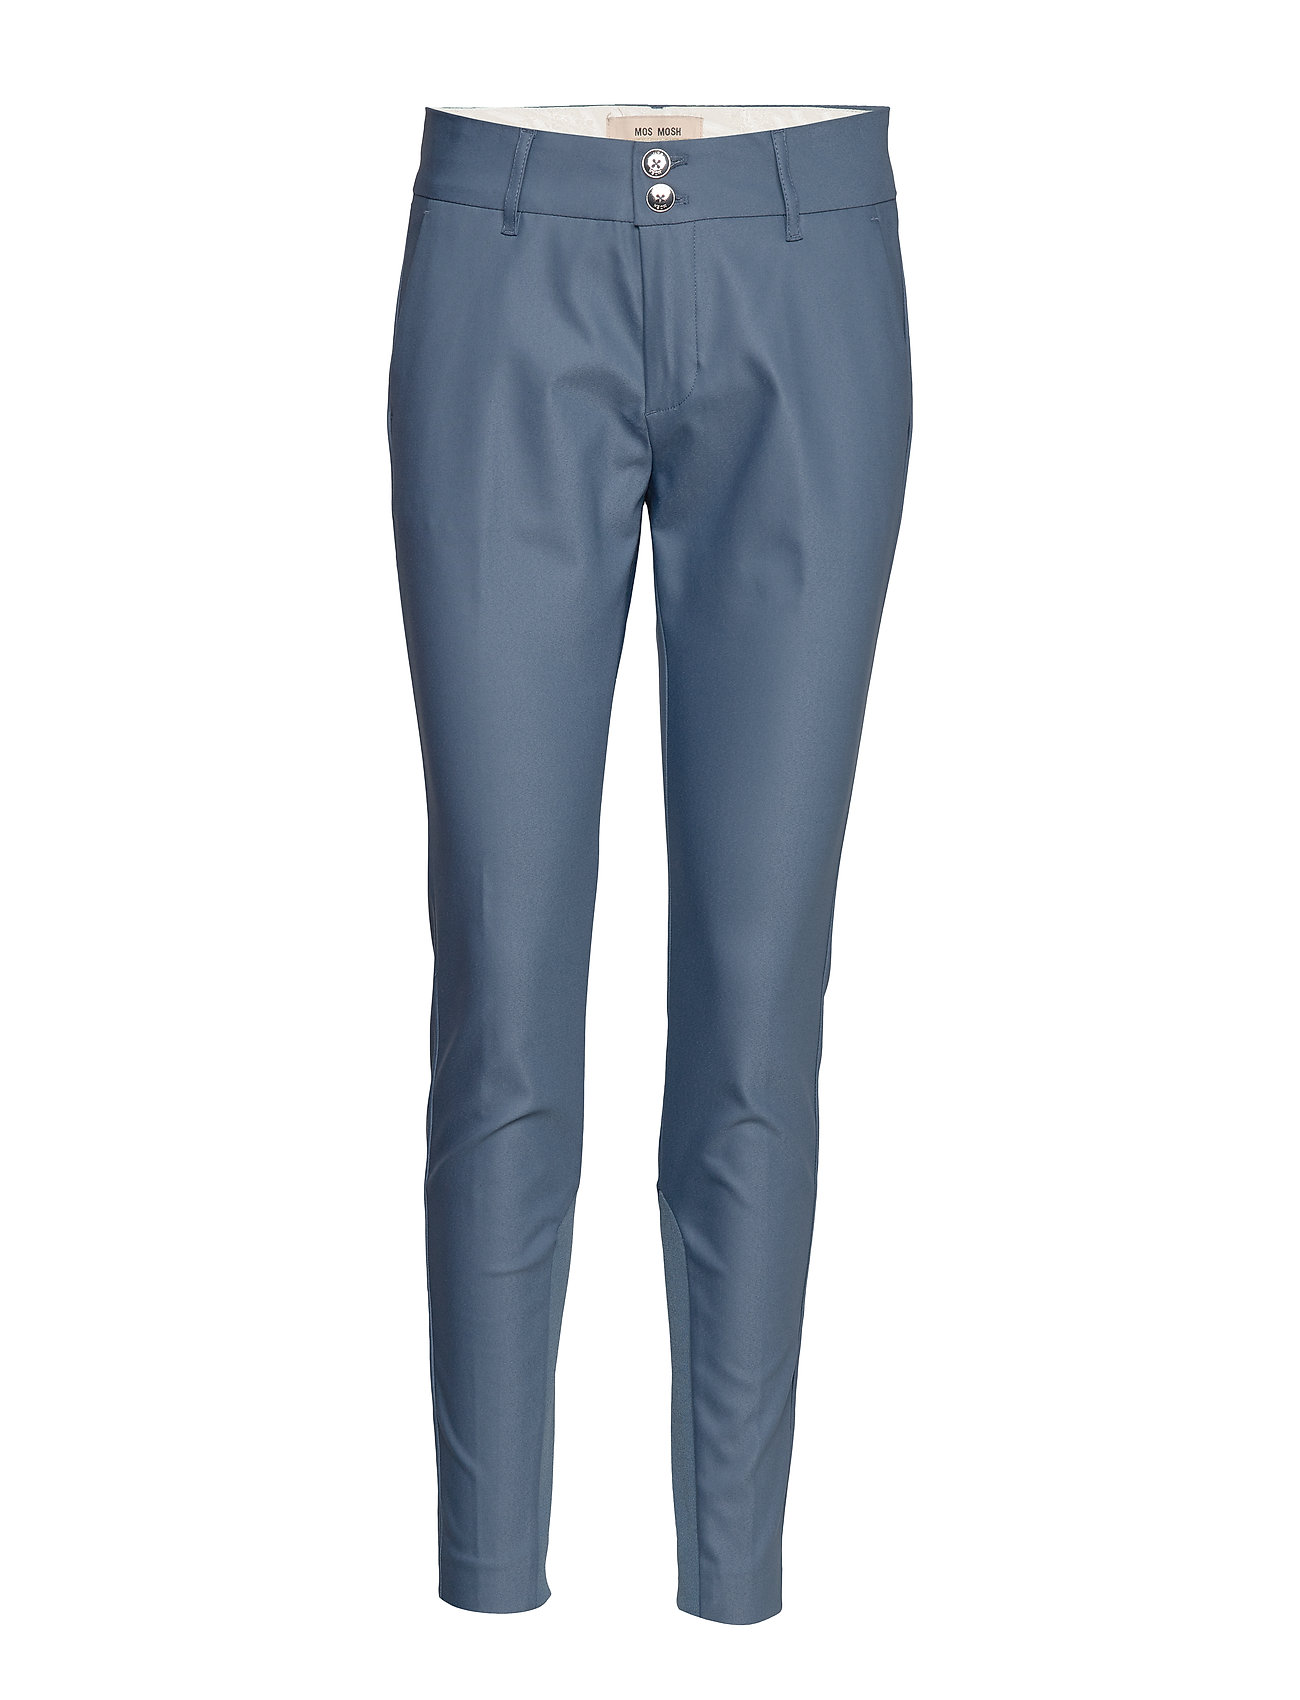 Image of Blake Night Pant Sustainable Bukser Med Lige Ben Blå MOS MOSH (3333161413)